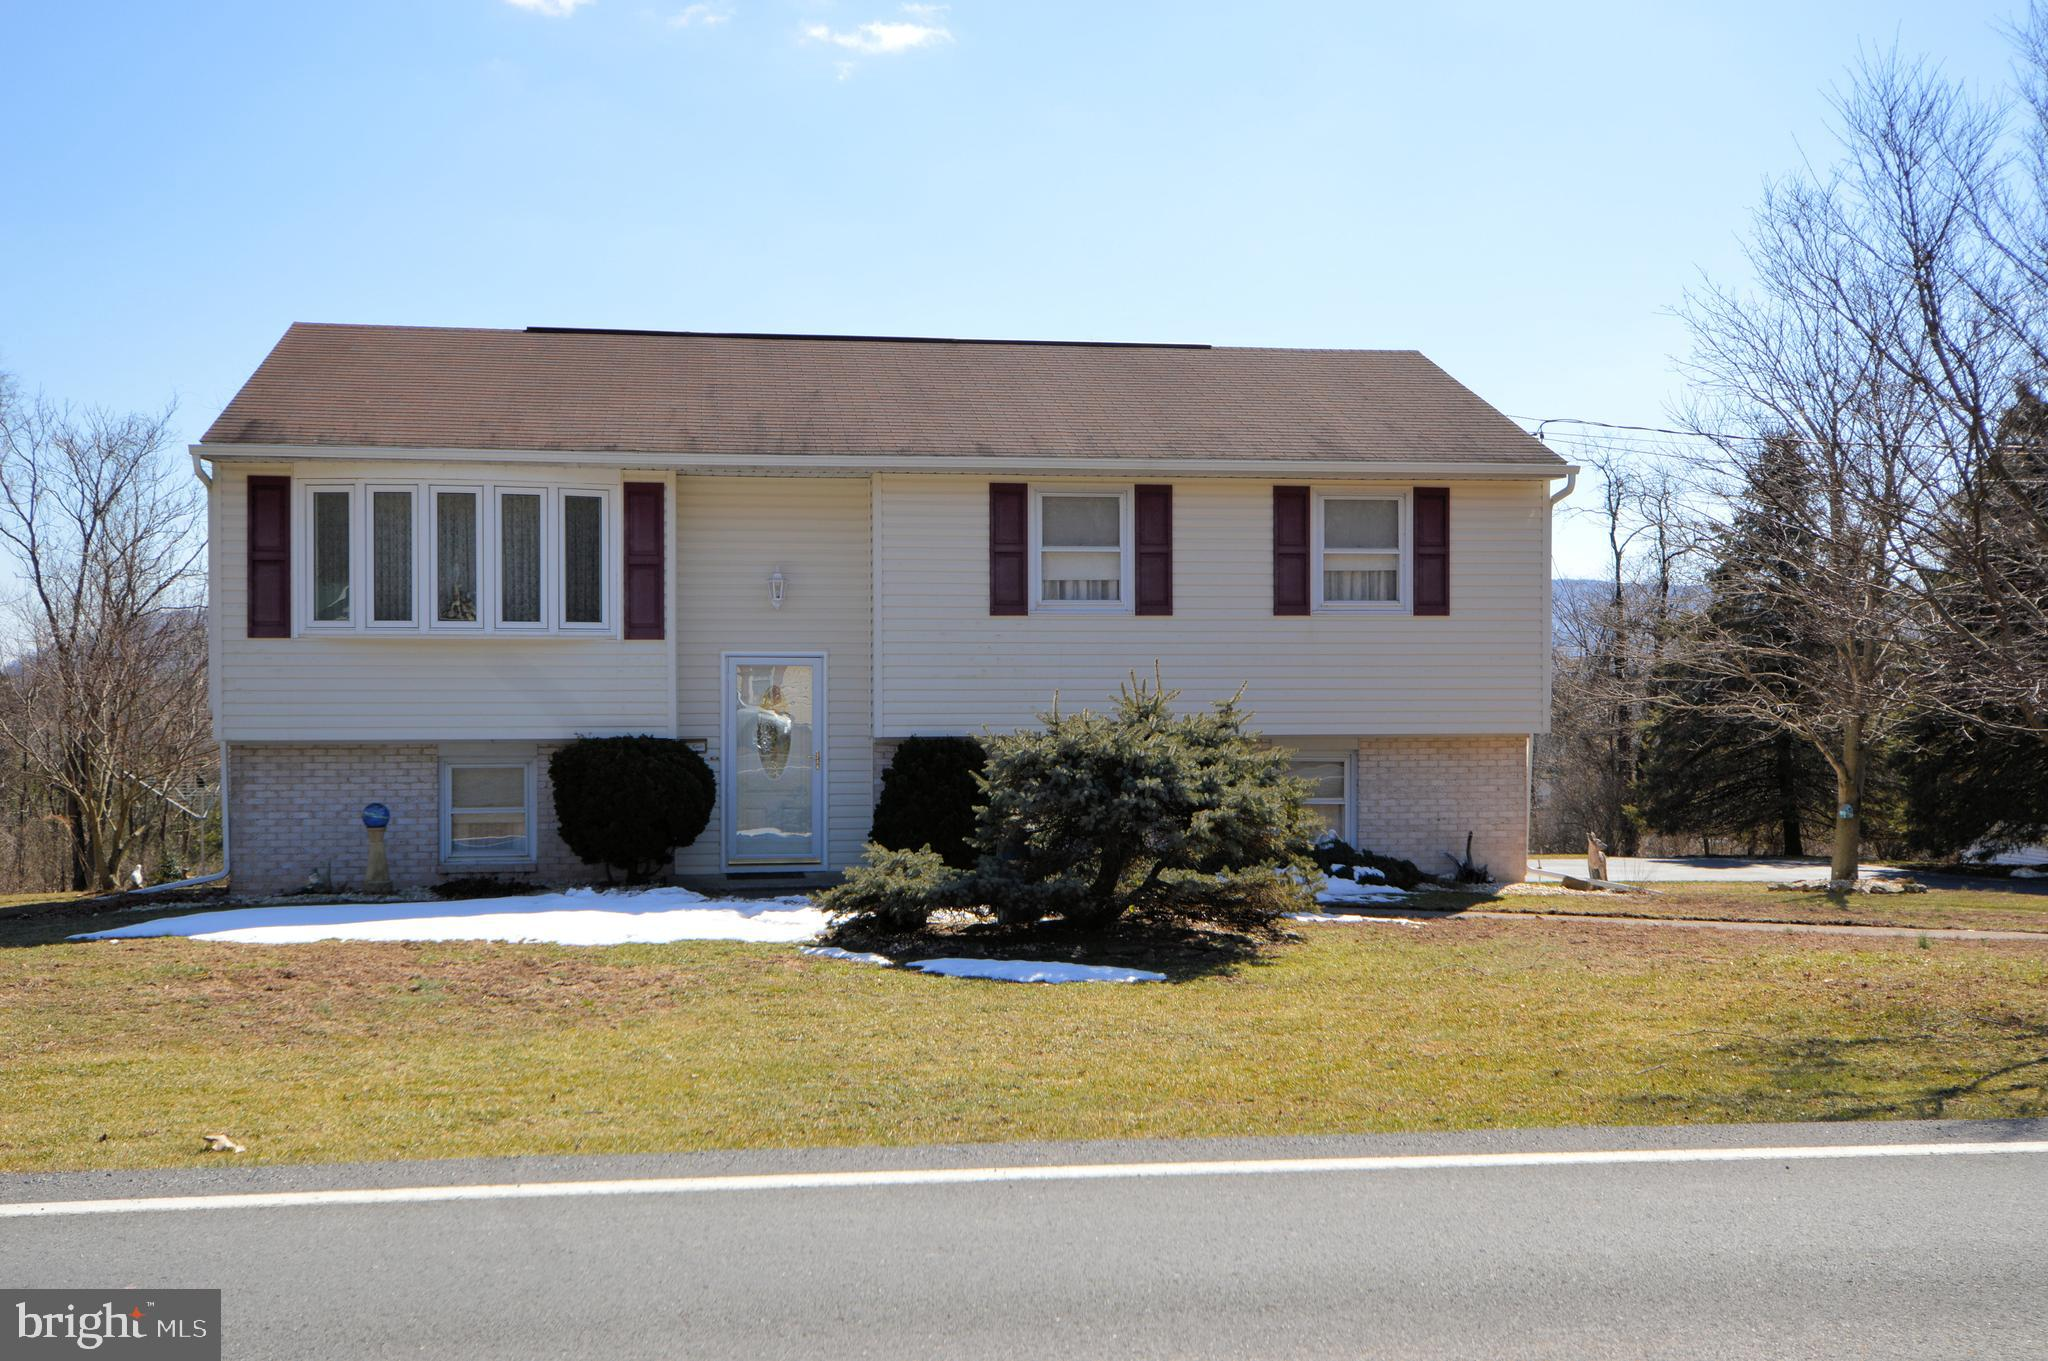 810 MOUNTAIN ROAD, DAUPHIN, PA 17018